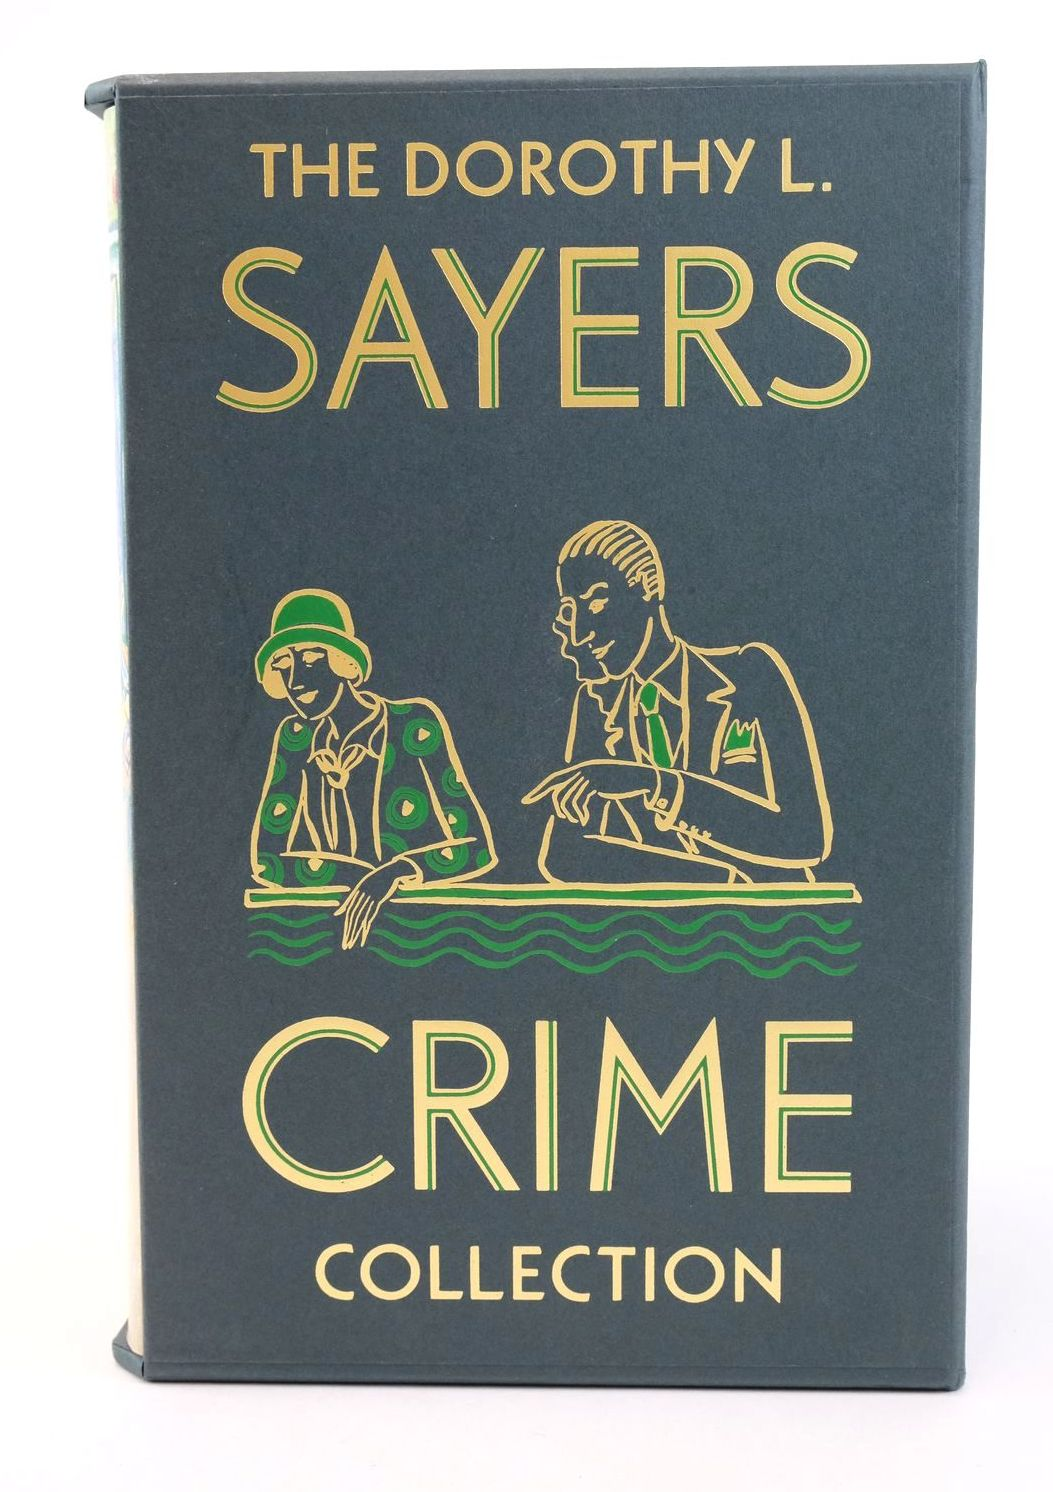 Photo of THE DOROTHY L. SAYERS CRIME COLLECTION (5 VOLUMES) written by Sayers, Dorothy L. illustrated by Ledwidge, Natacha published by Folio Society (STOCK CODE: 1318861)  for sale by Stella & Rose's Books